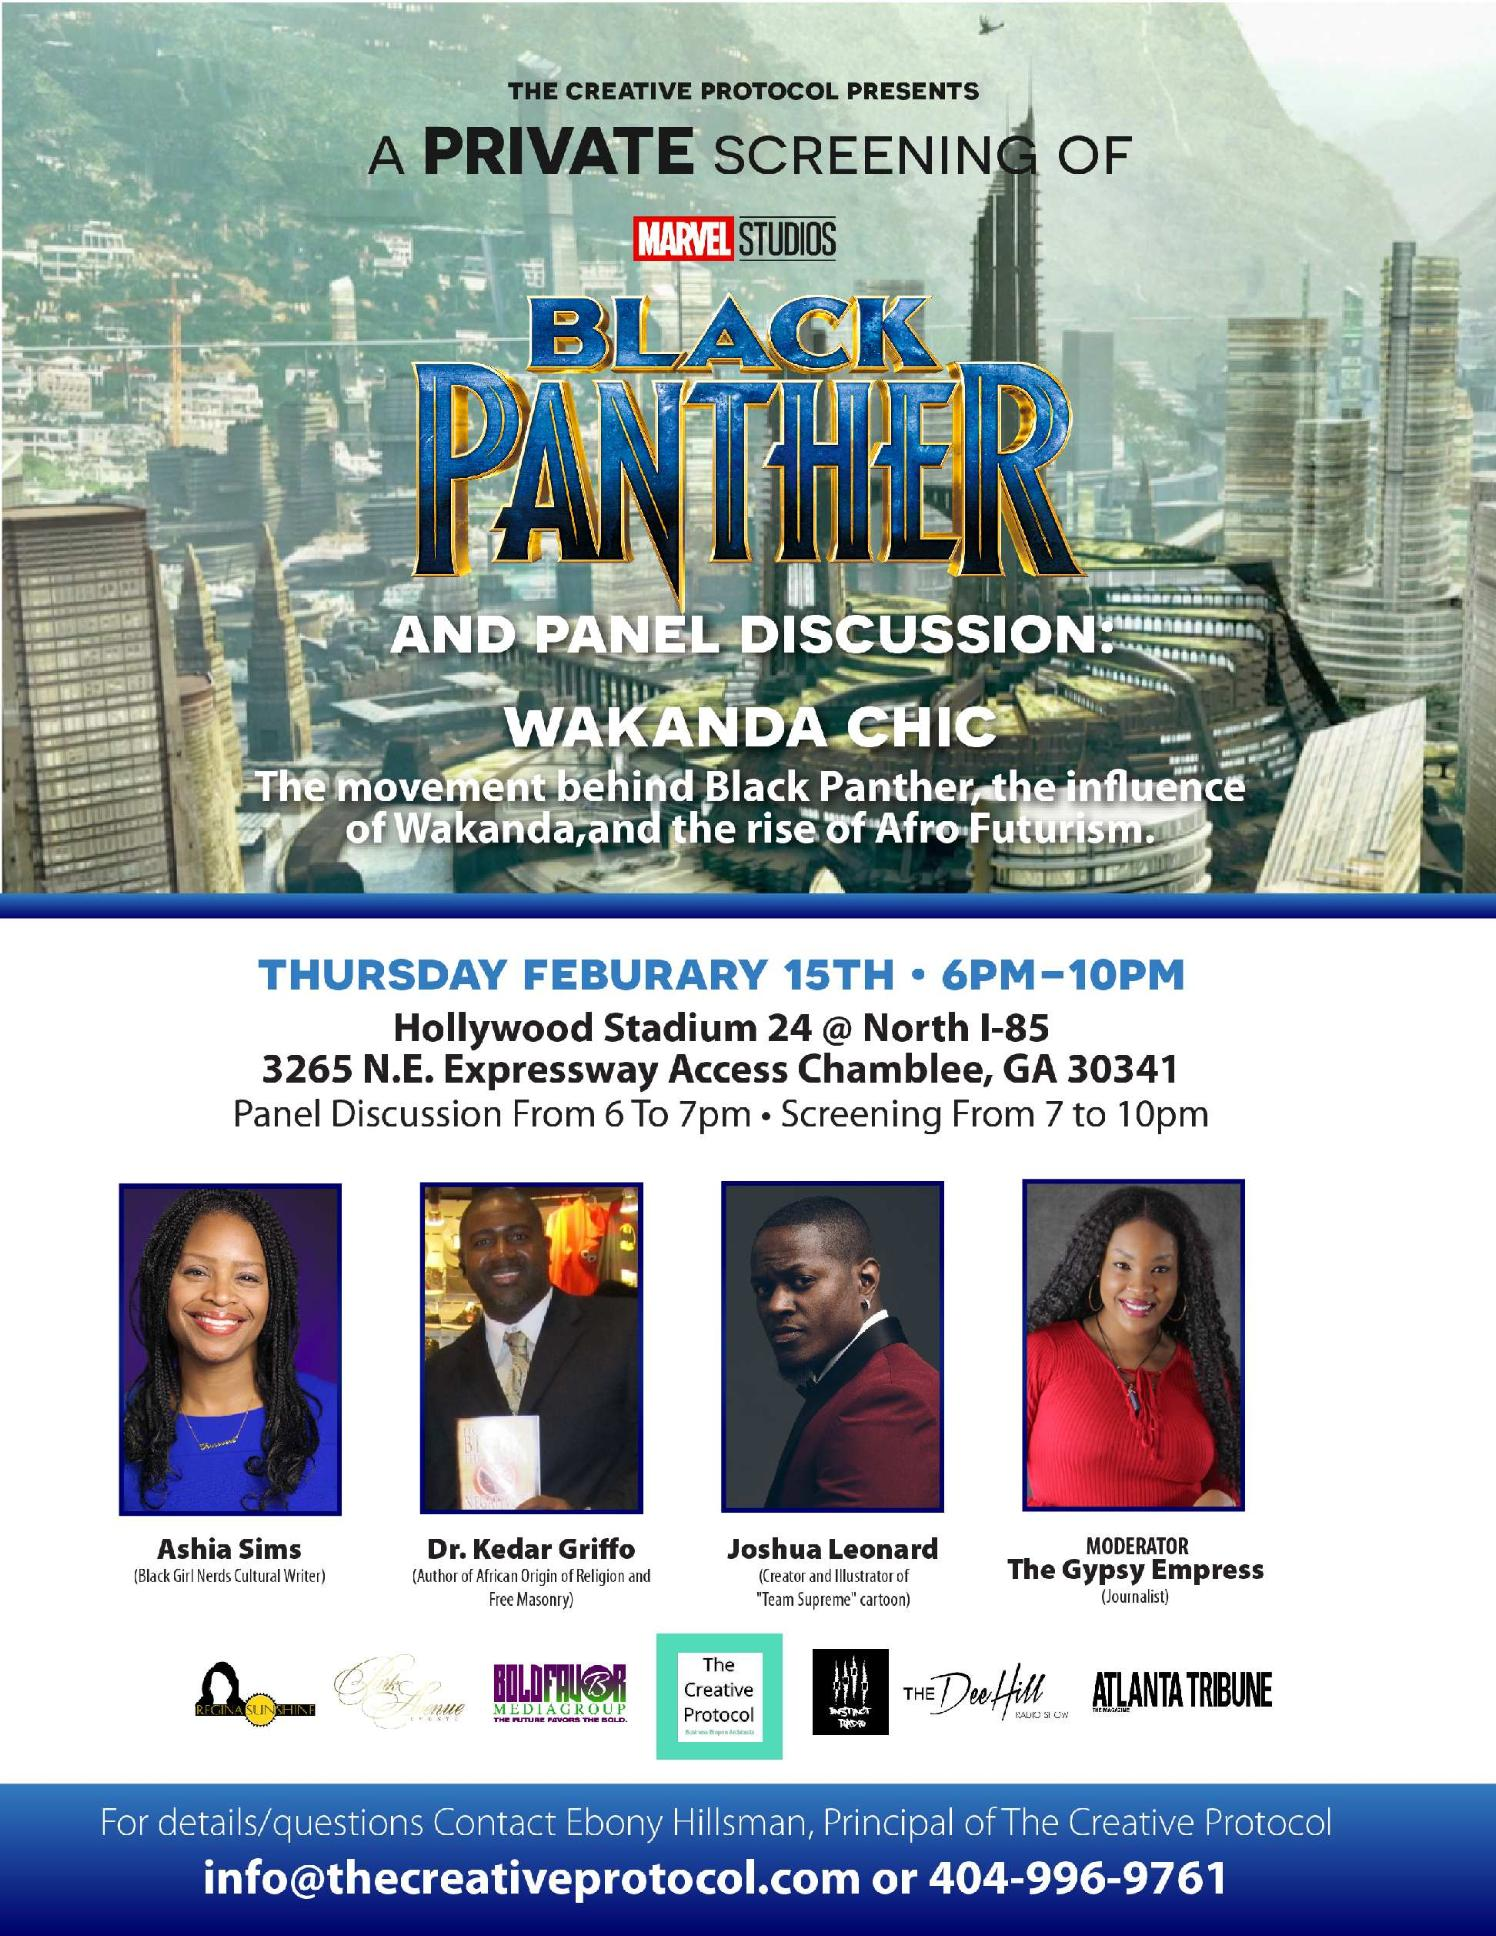 Black Panther Panel Discussion & Private Screening - Panelist for Marvel's Black Panther Film, 2018.